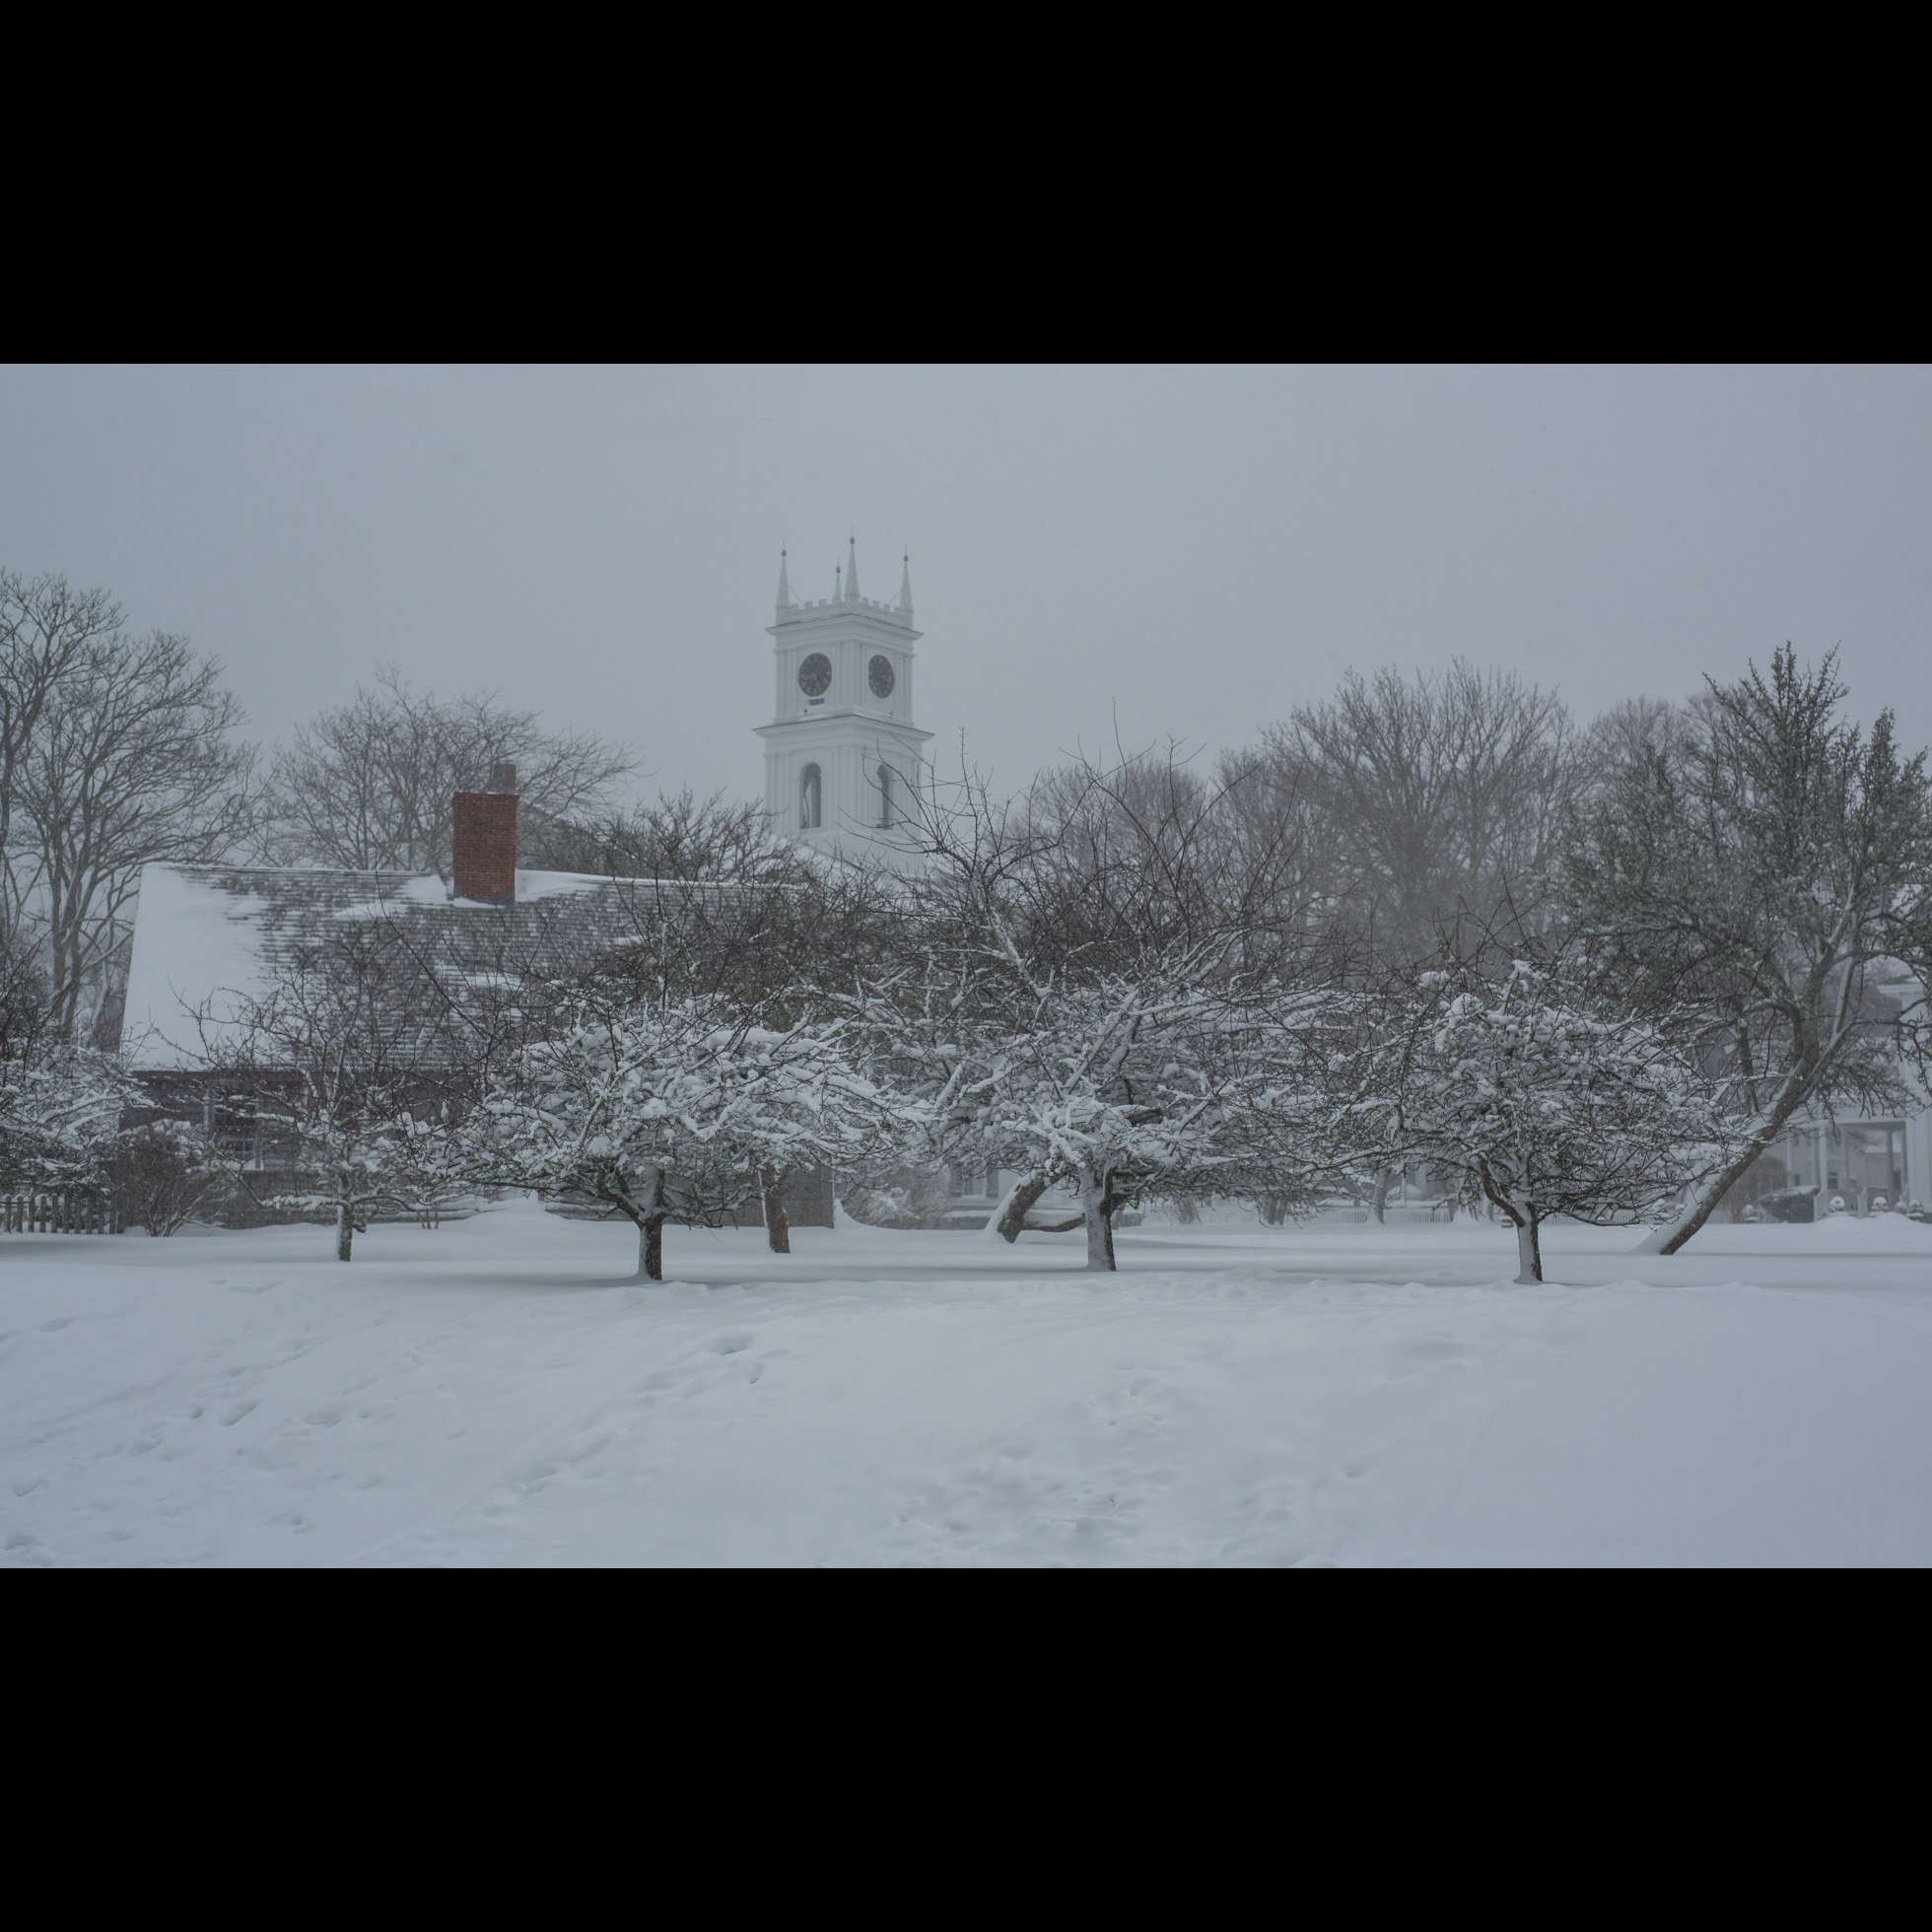 1.7 WHALING CHURCH SNOWED IN